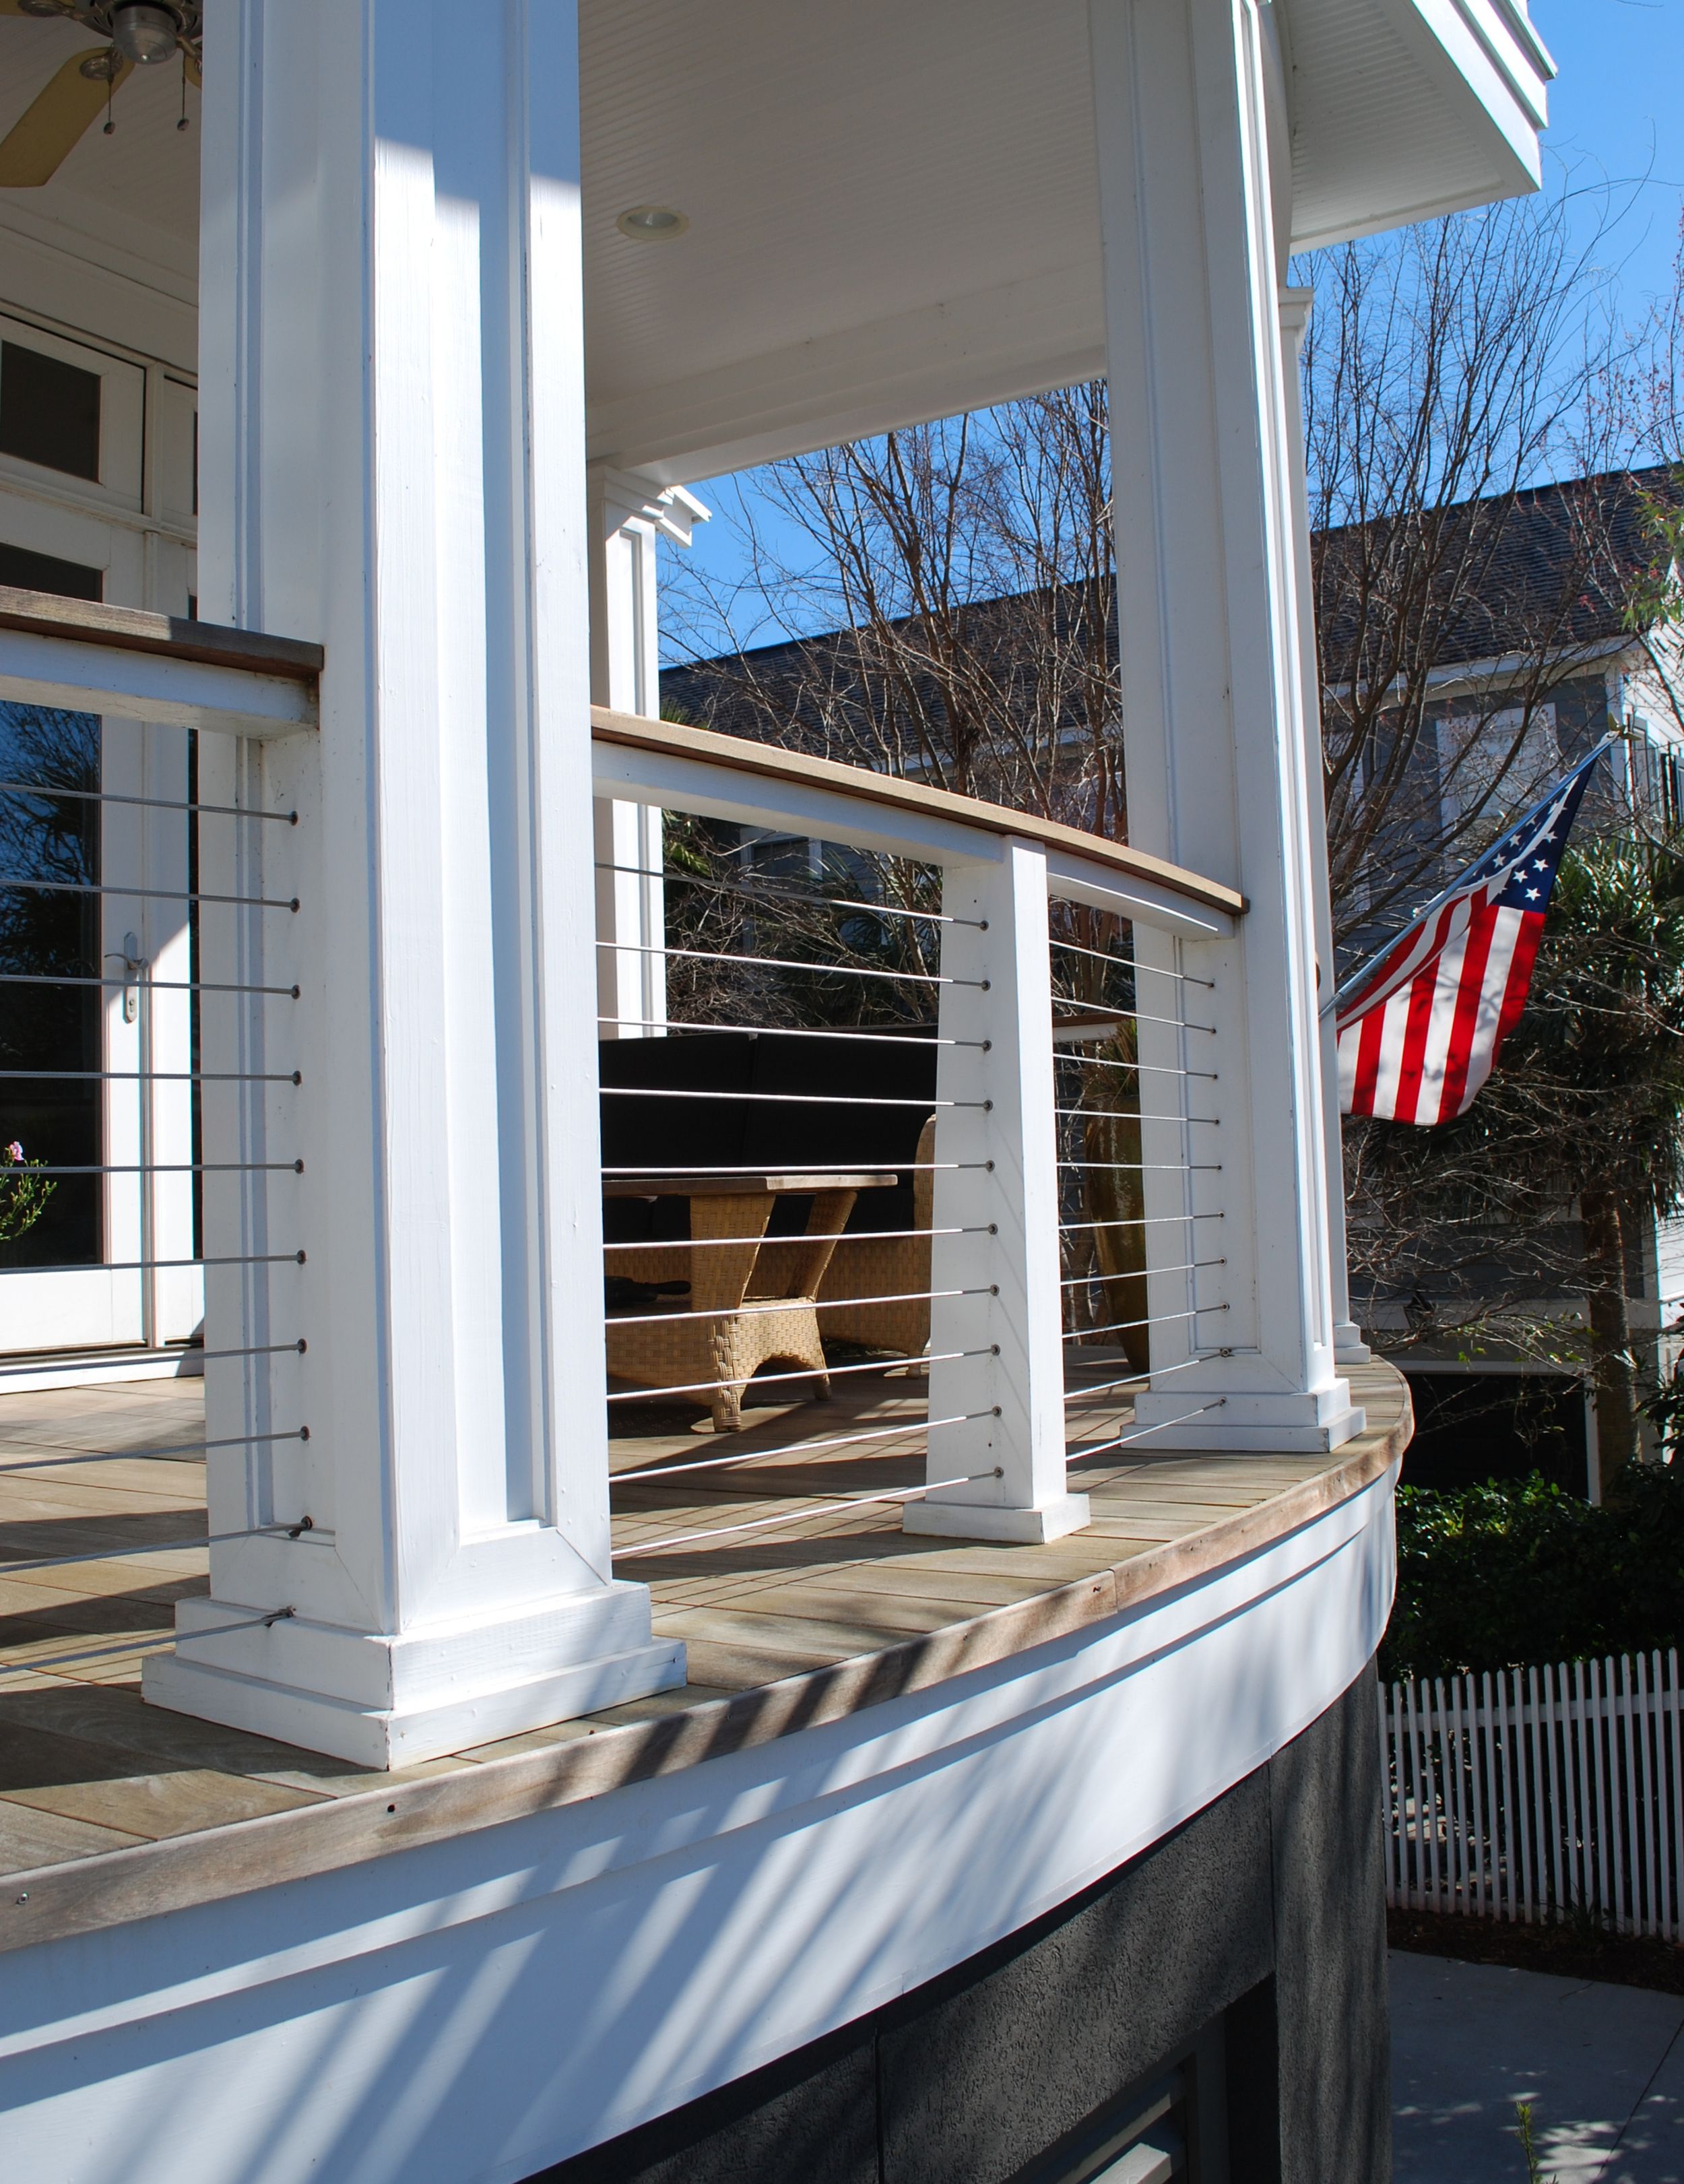 2006  |  Porch detail on a coastal home design in Mount Pleasant, SC.